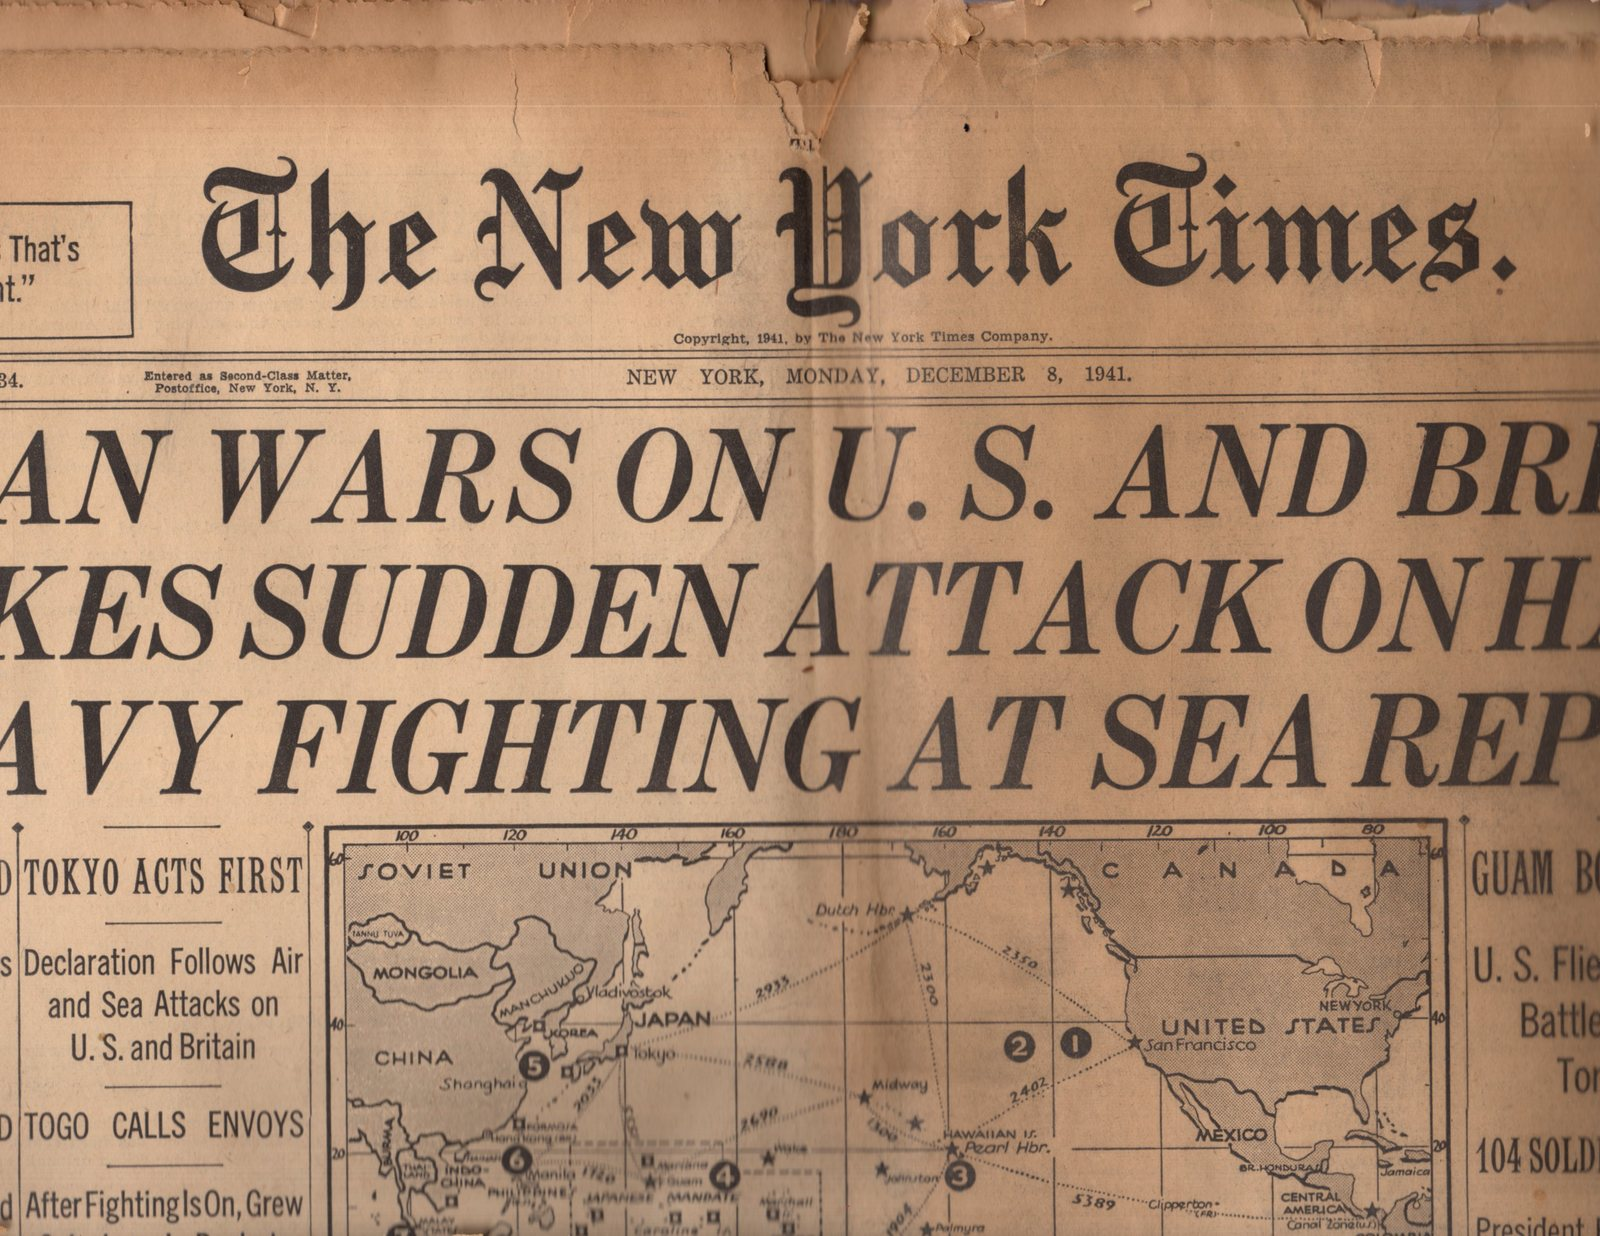 The New York Times, Newspaper, Monday, December 8,1941 ( Section One)